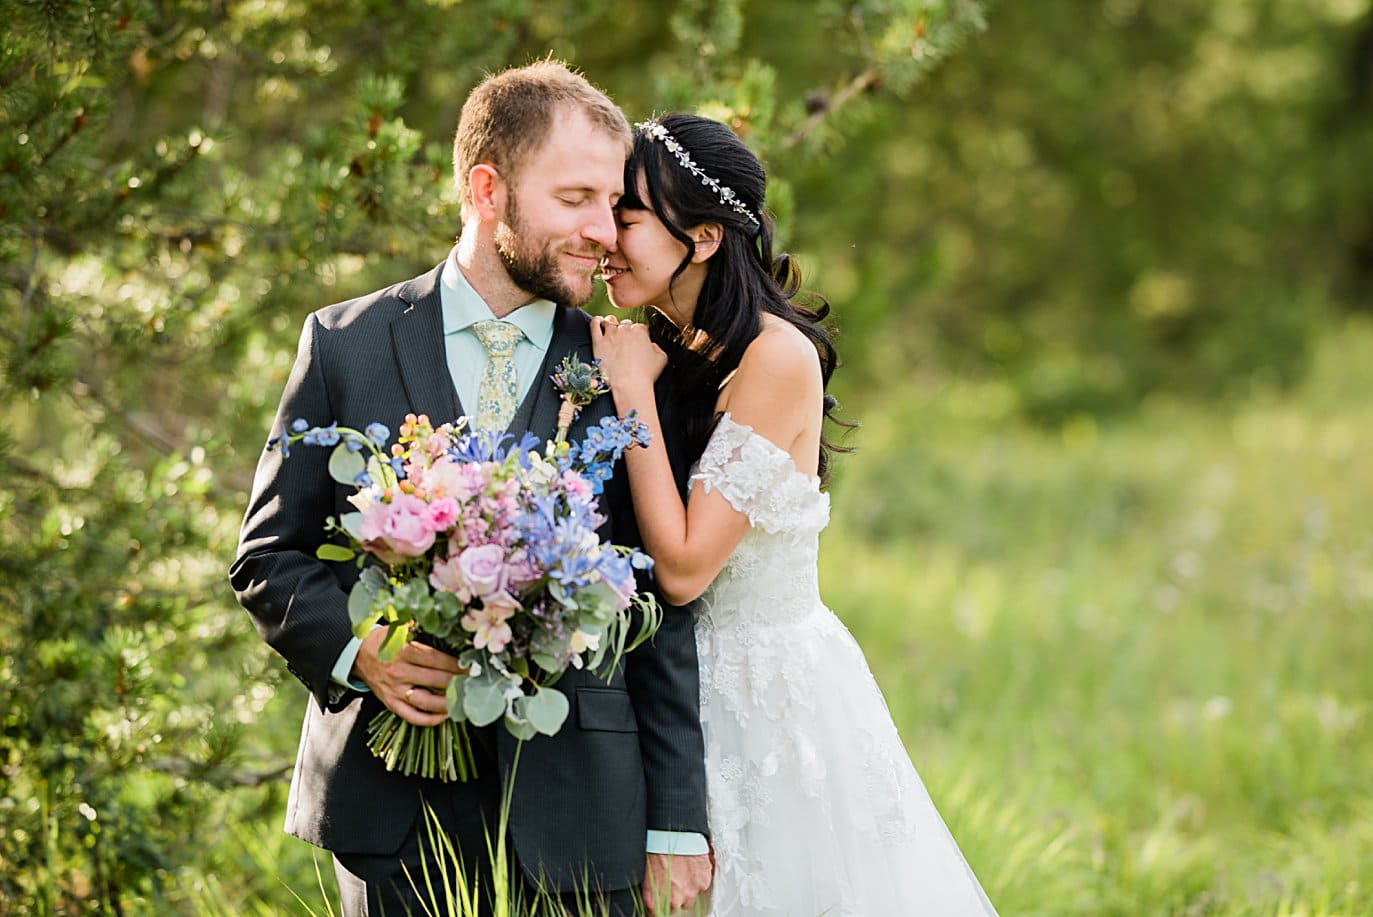 bride and groom with wildflower bouquet at intimate Grand Lake wedding by Estes Park wedding photographer Jennie Crate